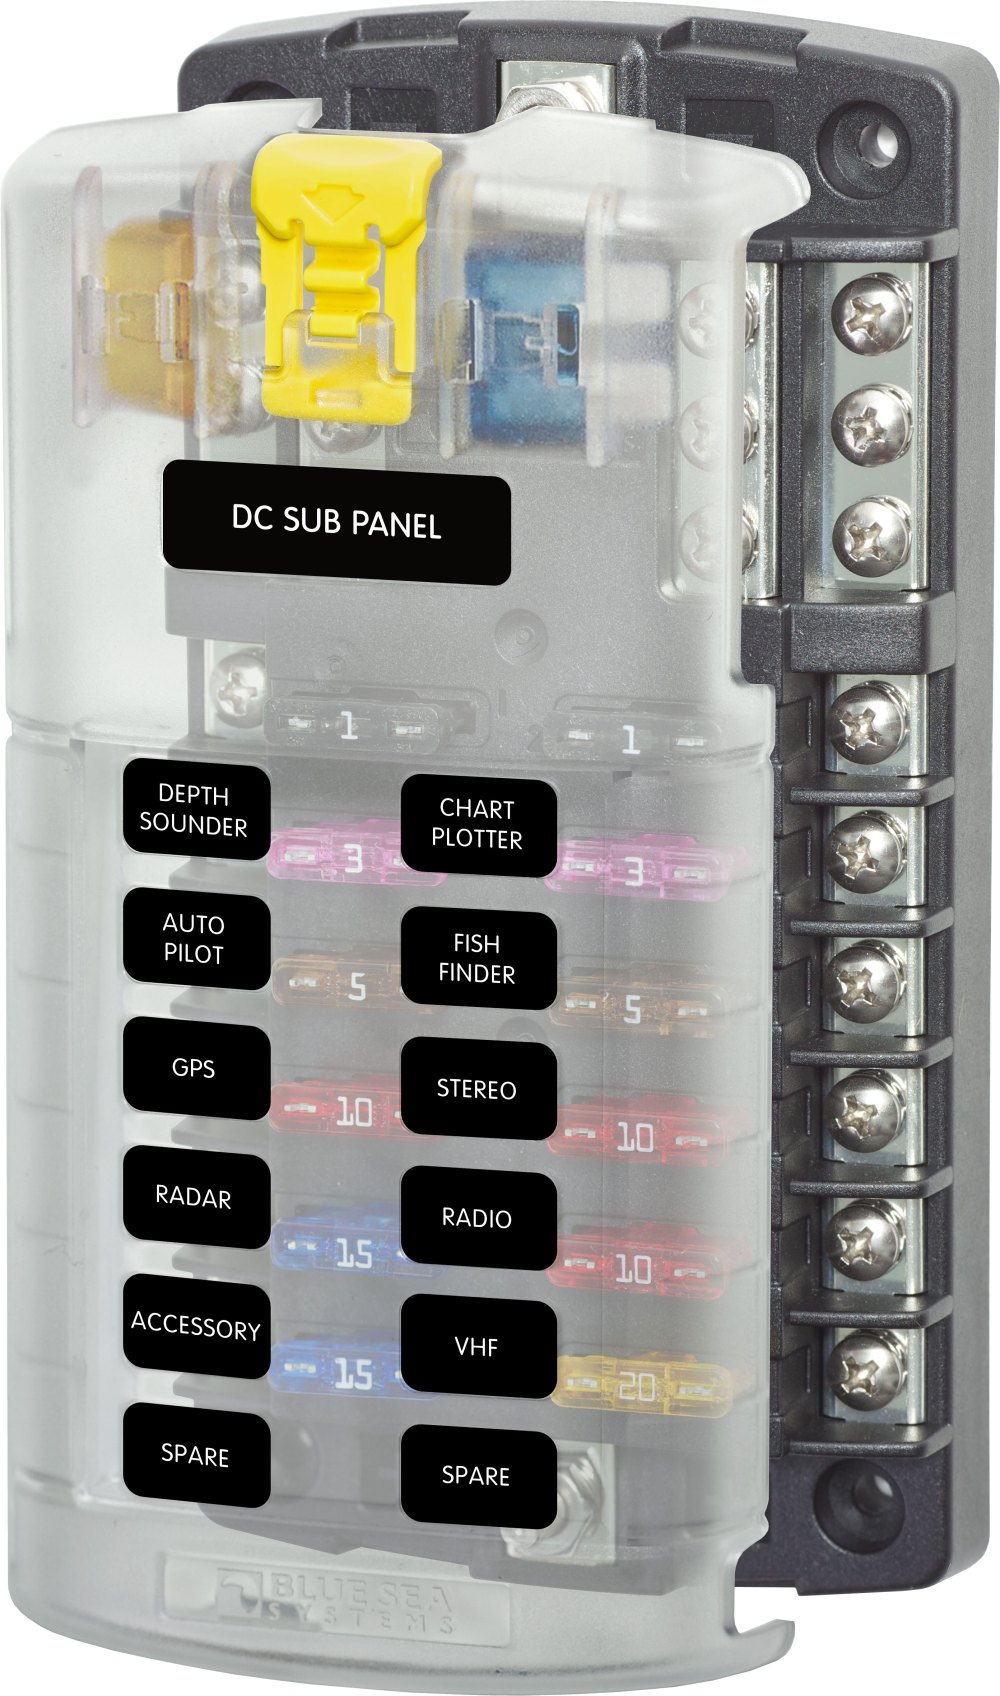 medium resolution of marine dc fuse box wiring diagram go marine dc fuse box